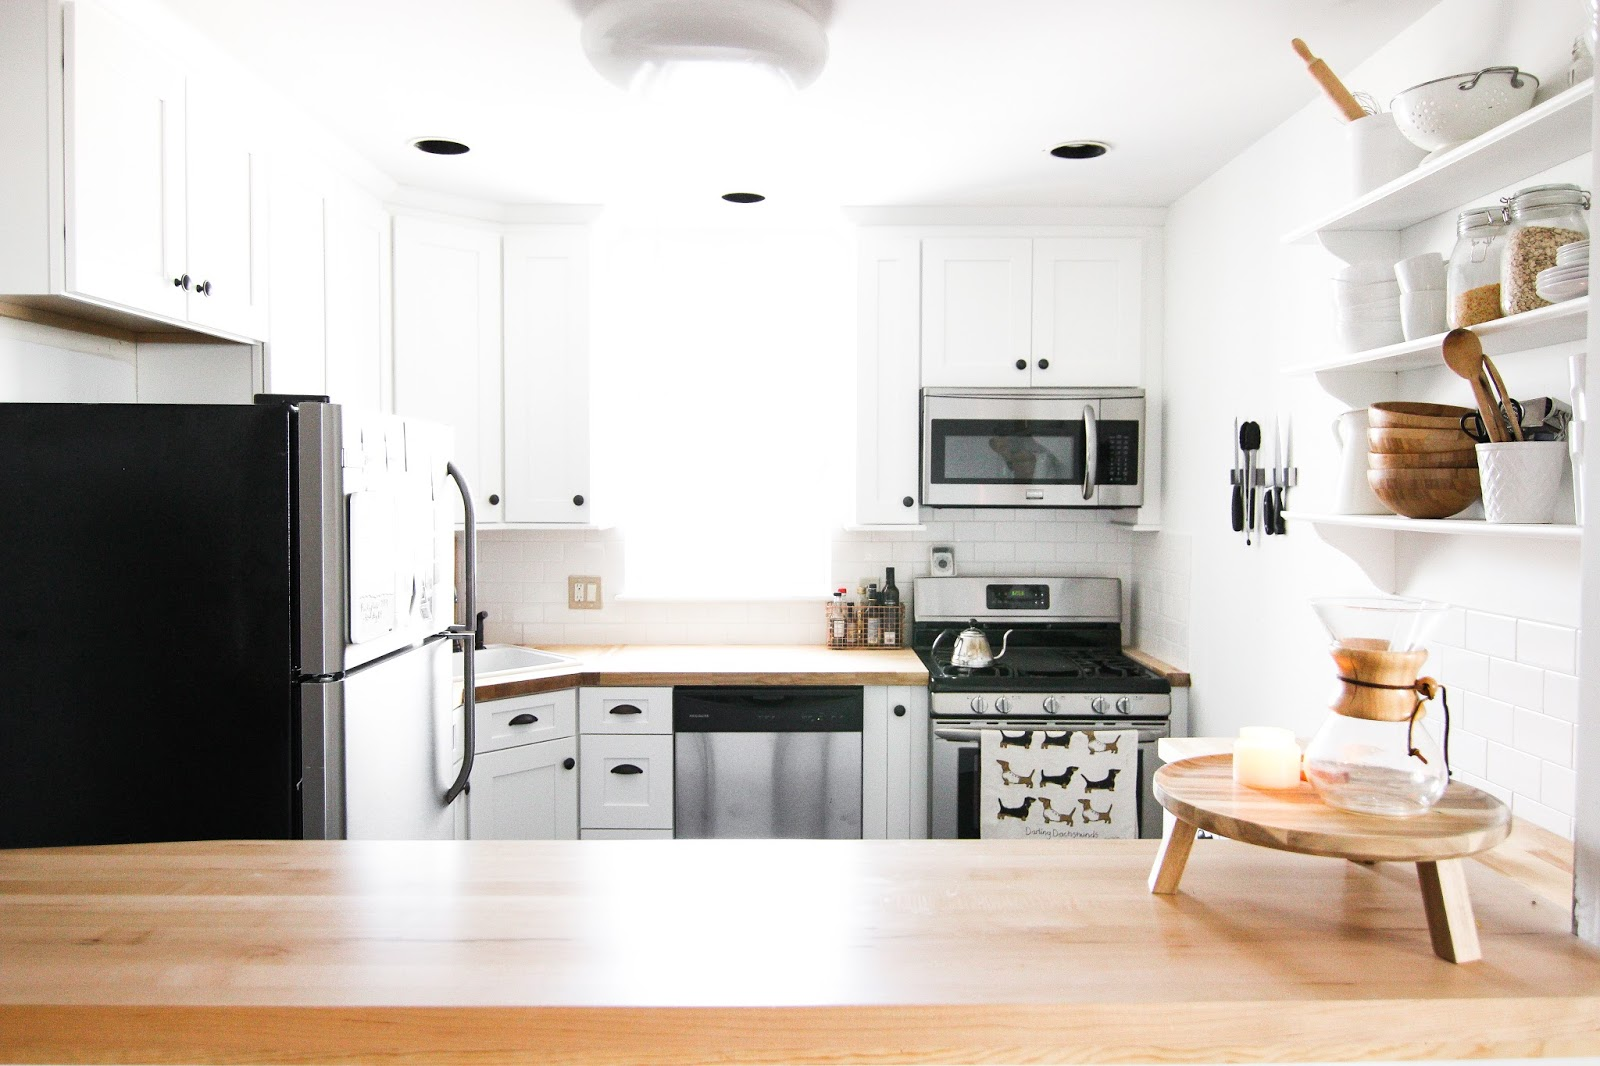 farmhouse kitchen, subway tile kitchen, white and wood kitchen, butcher block counter, west elm kitchen